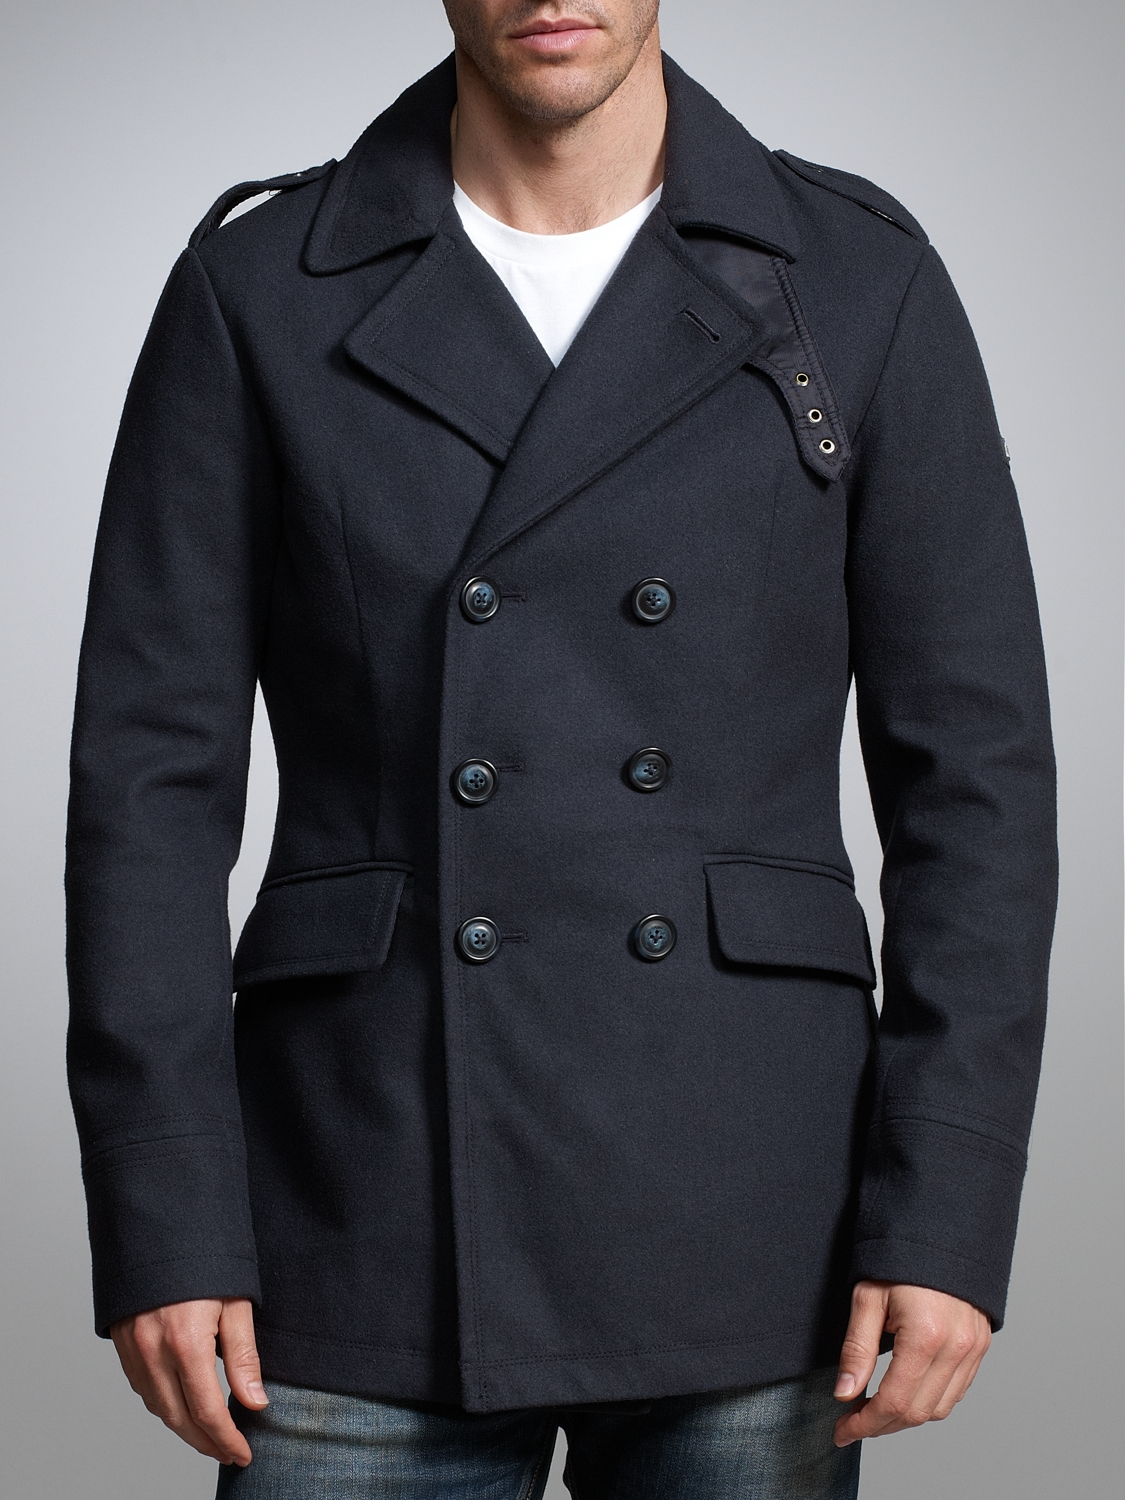 attractive & durable hot-selling clearance official photos Armani Jeans Peacoat in Navy (Blue) for Men - Lyst